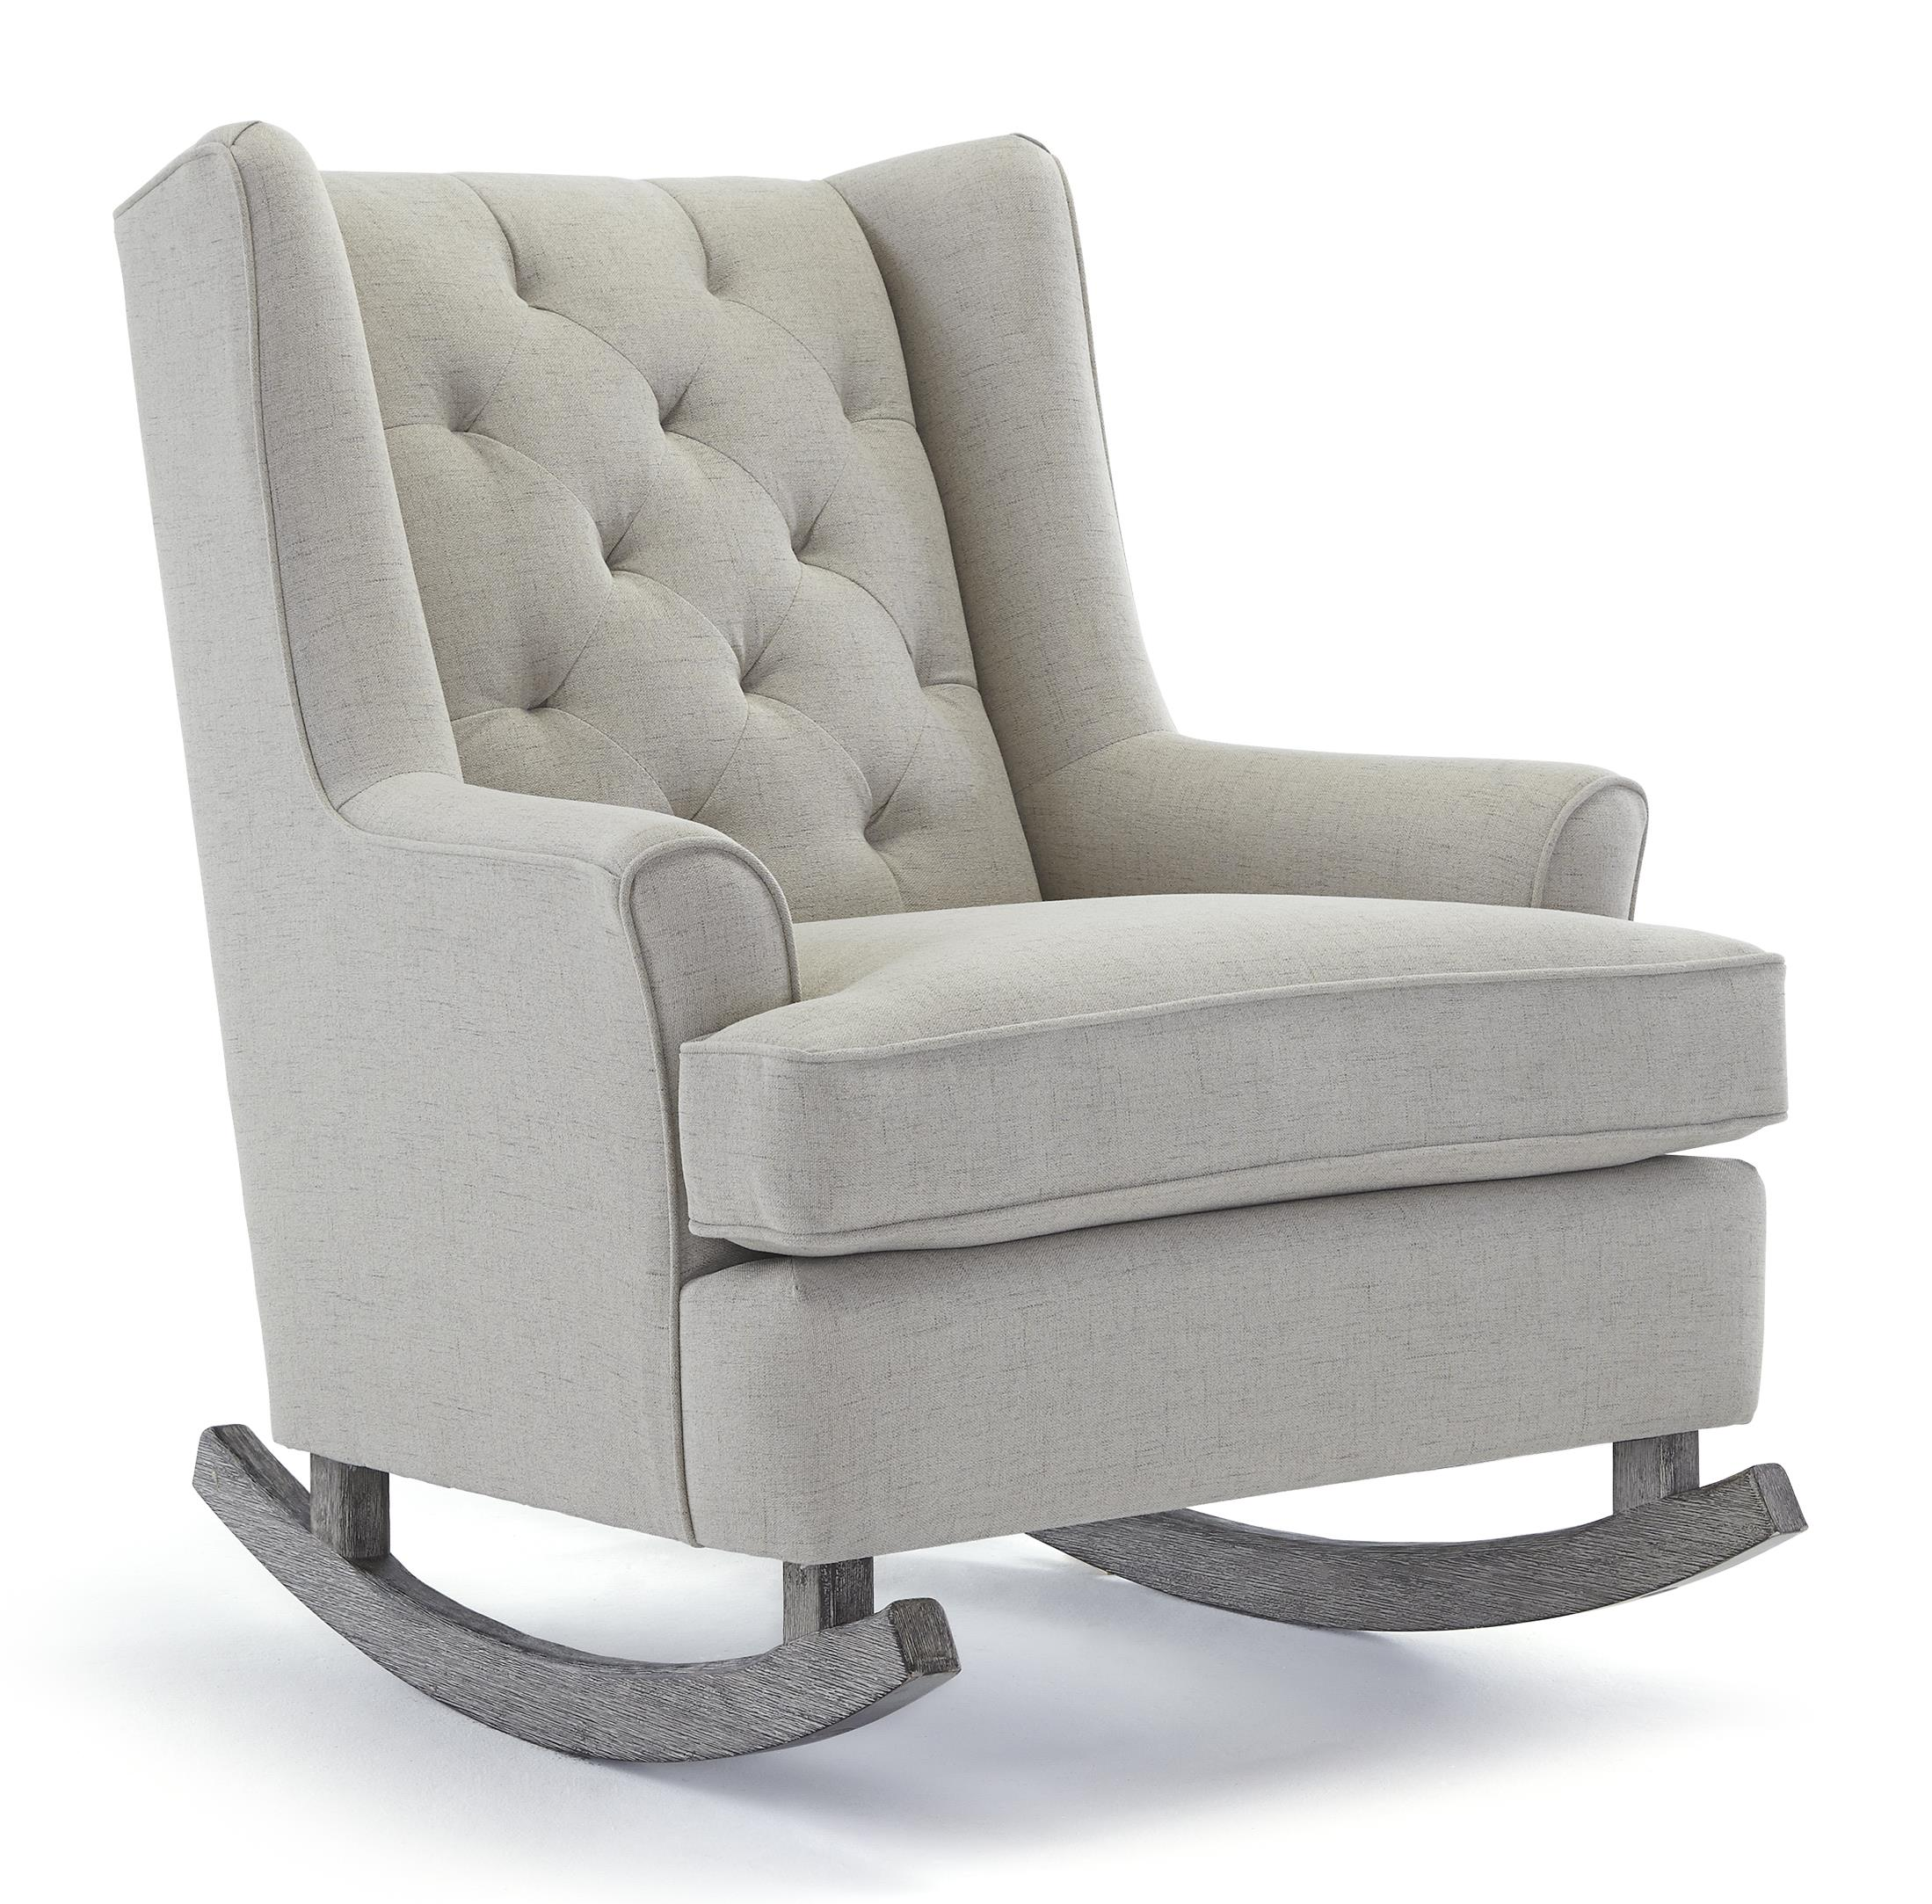 Storytime Swivel Chairs and Ottomans Paisley Rocking Chair by Best Chairs Storytime Series at Best Home Furnishings